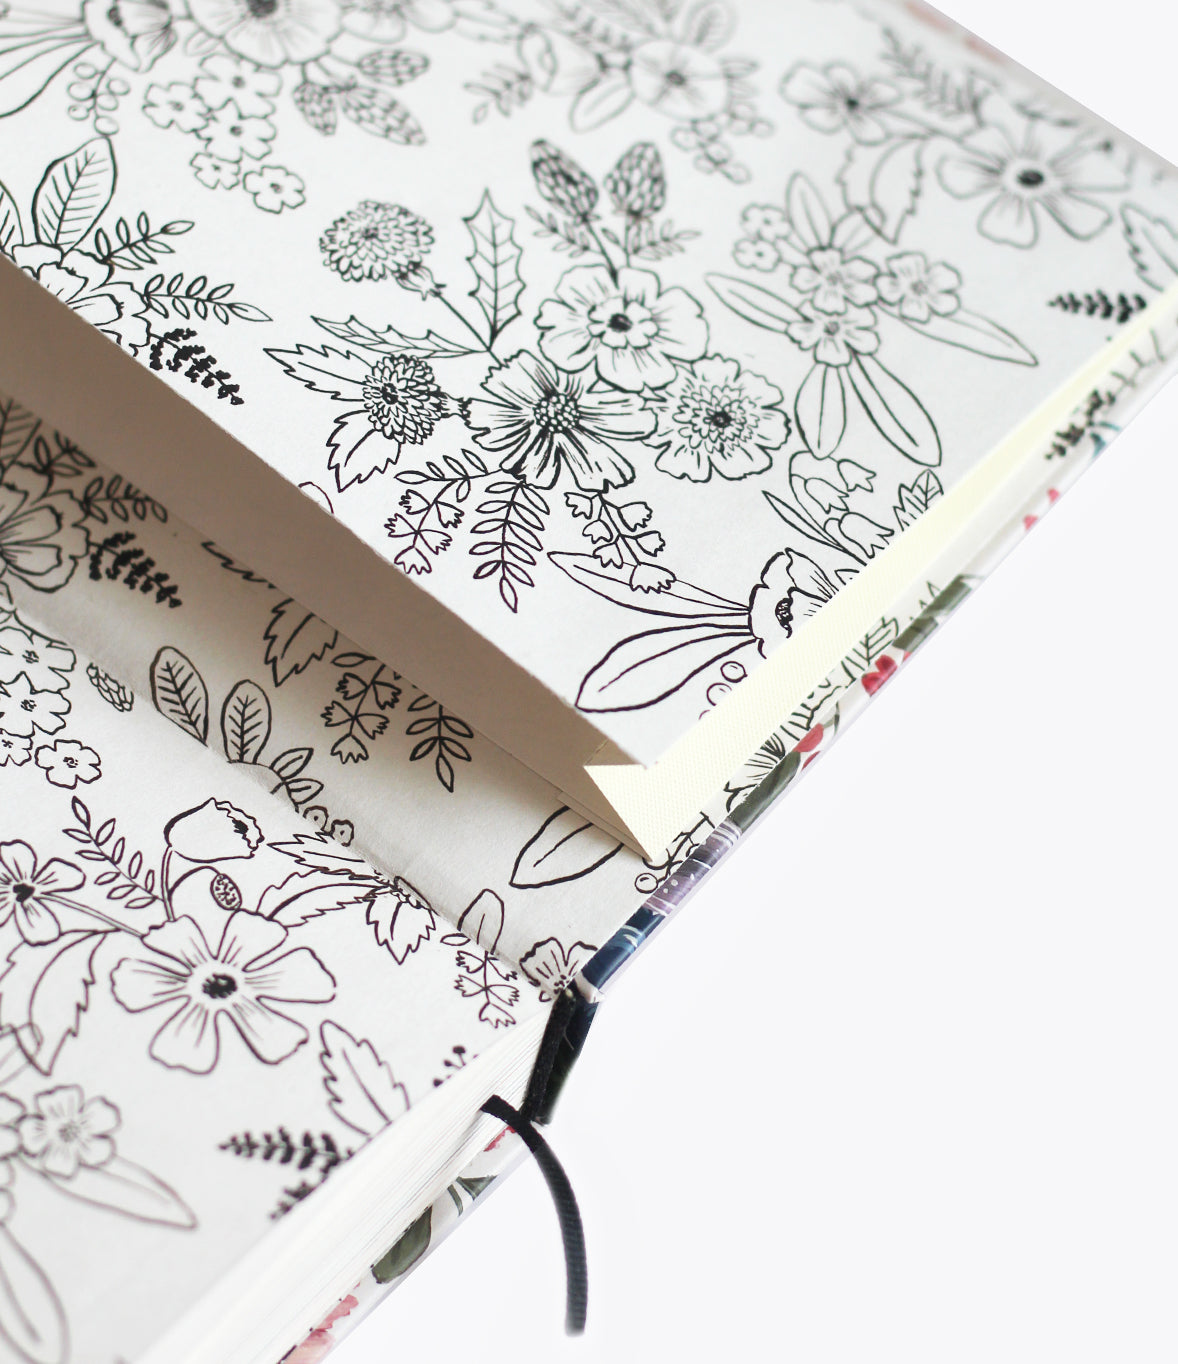 2021 Planner | Tropical Berry